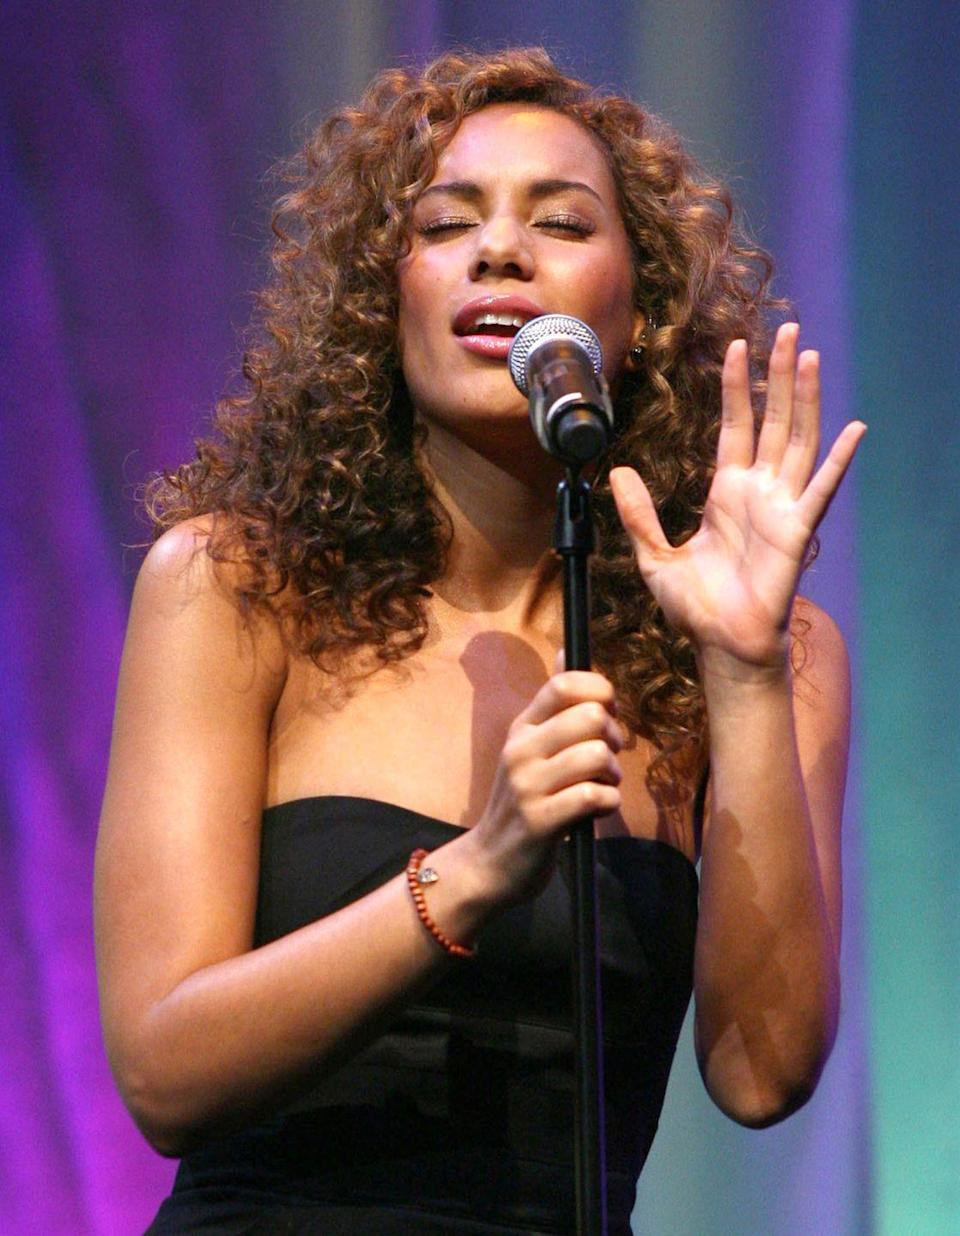 """<p>From Leona Lewis' first holiday album, this song cheerily counts down the days until Christmas. (Stars — they're just like us!)<br></p><p><a class=""""link rapid-noclick-resp"""" href=""""https://www.amazon.com/One-More-Sleep-Leona-Lewis/dp/B00GBKG9AI/ref=sr_1_1?crid=38LOCW93EI41P&tag=syn-yahoo-20&ascsubtag=%5Bartid%7C10055.g.2680%5Bsrc%7Cyahoo-us"""" rel=""""nofollow noopener"""" target=""""_blank"""" data-ylk=""""slk:AMAZON"""">AMAZON</a> <a class=""""link rapid-noclick-resp"""" href=""""https://go.redirectingat.com?id=74968X1596630&url=https%3A%2F%2Fmusic.apple.com%2Fus%2Falbum%2Fchristmas-with-love%2F733985194&sref=https%3A%2F%2Fwww.goodhousekeeping.com%2Fholidays%2Fchristmas-ideas%2Fg2680%2Fchristmas-songs%2F"""" rel=""""nofollow noopener"""" target=""""_blank"""" data-ylk=""""slk:ITUNES"""">ITUNES</a><br></p>"""